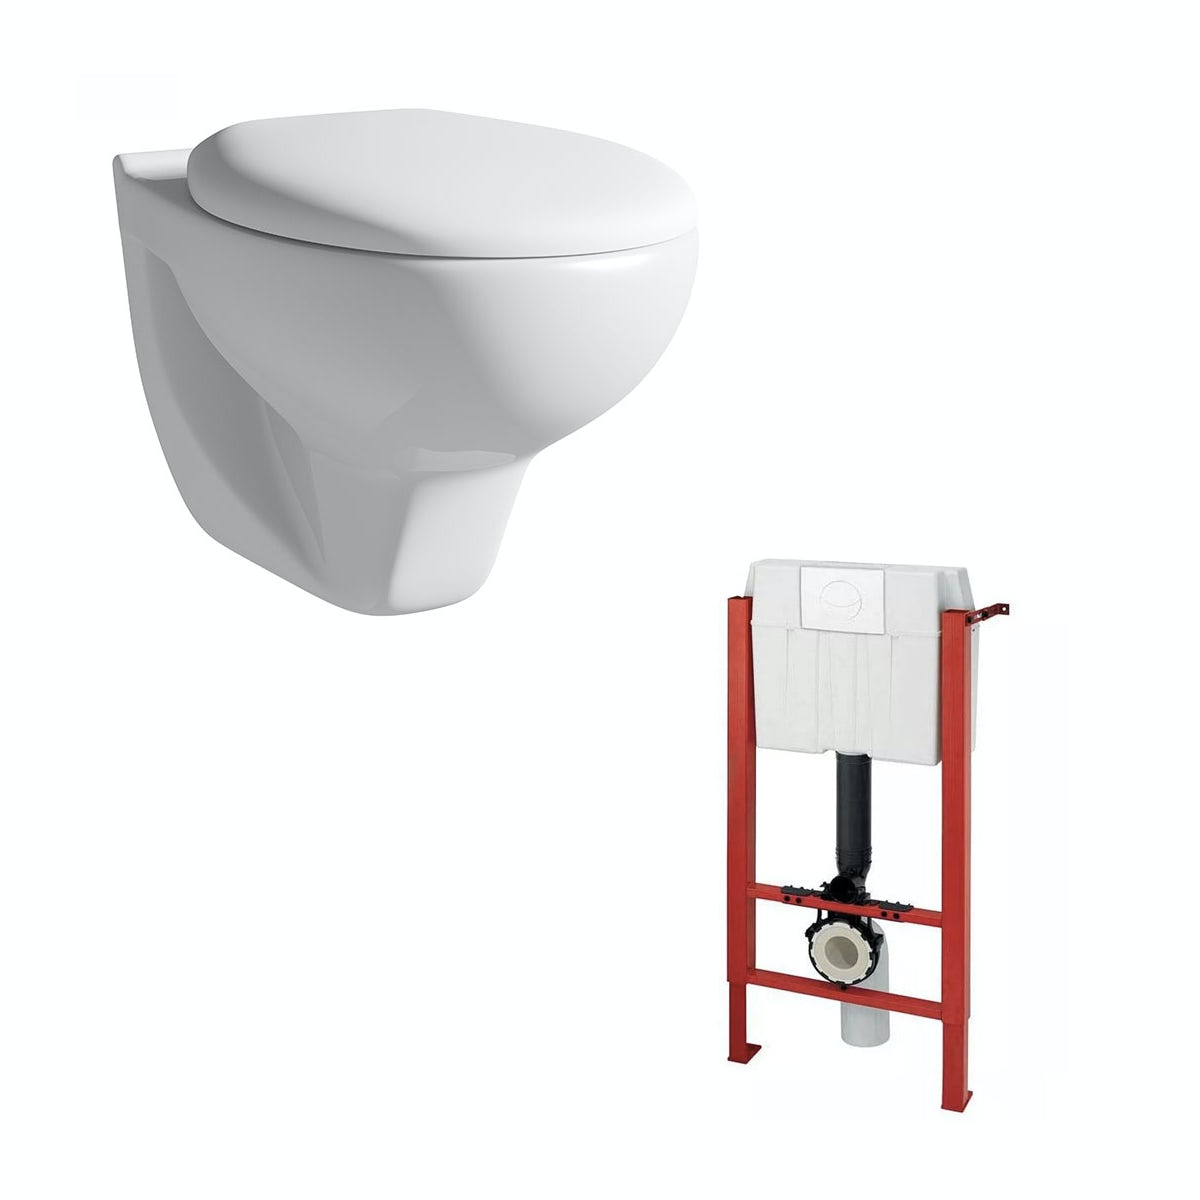 Orchard Elena wall hung toilet and wall mounting frame